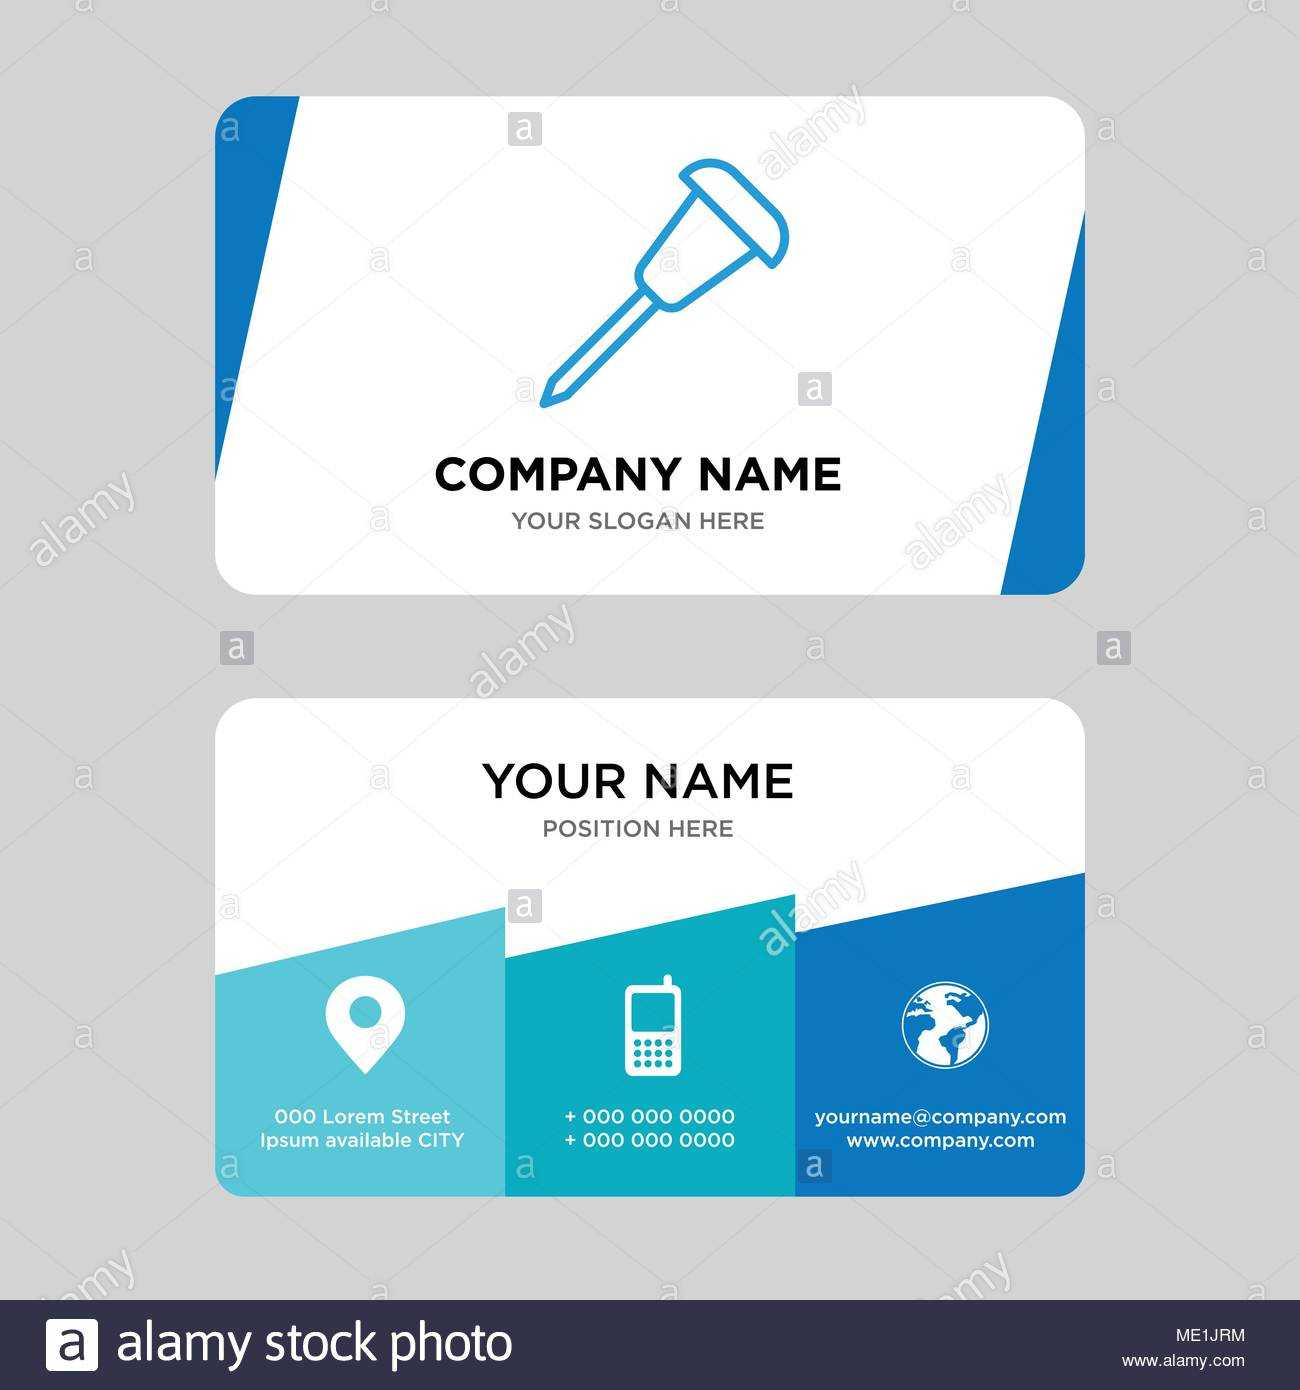 Pushpin Business Card Design Template, Visiting For Your Throughout Push Card Template